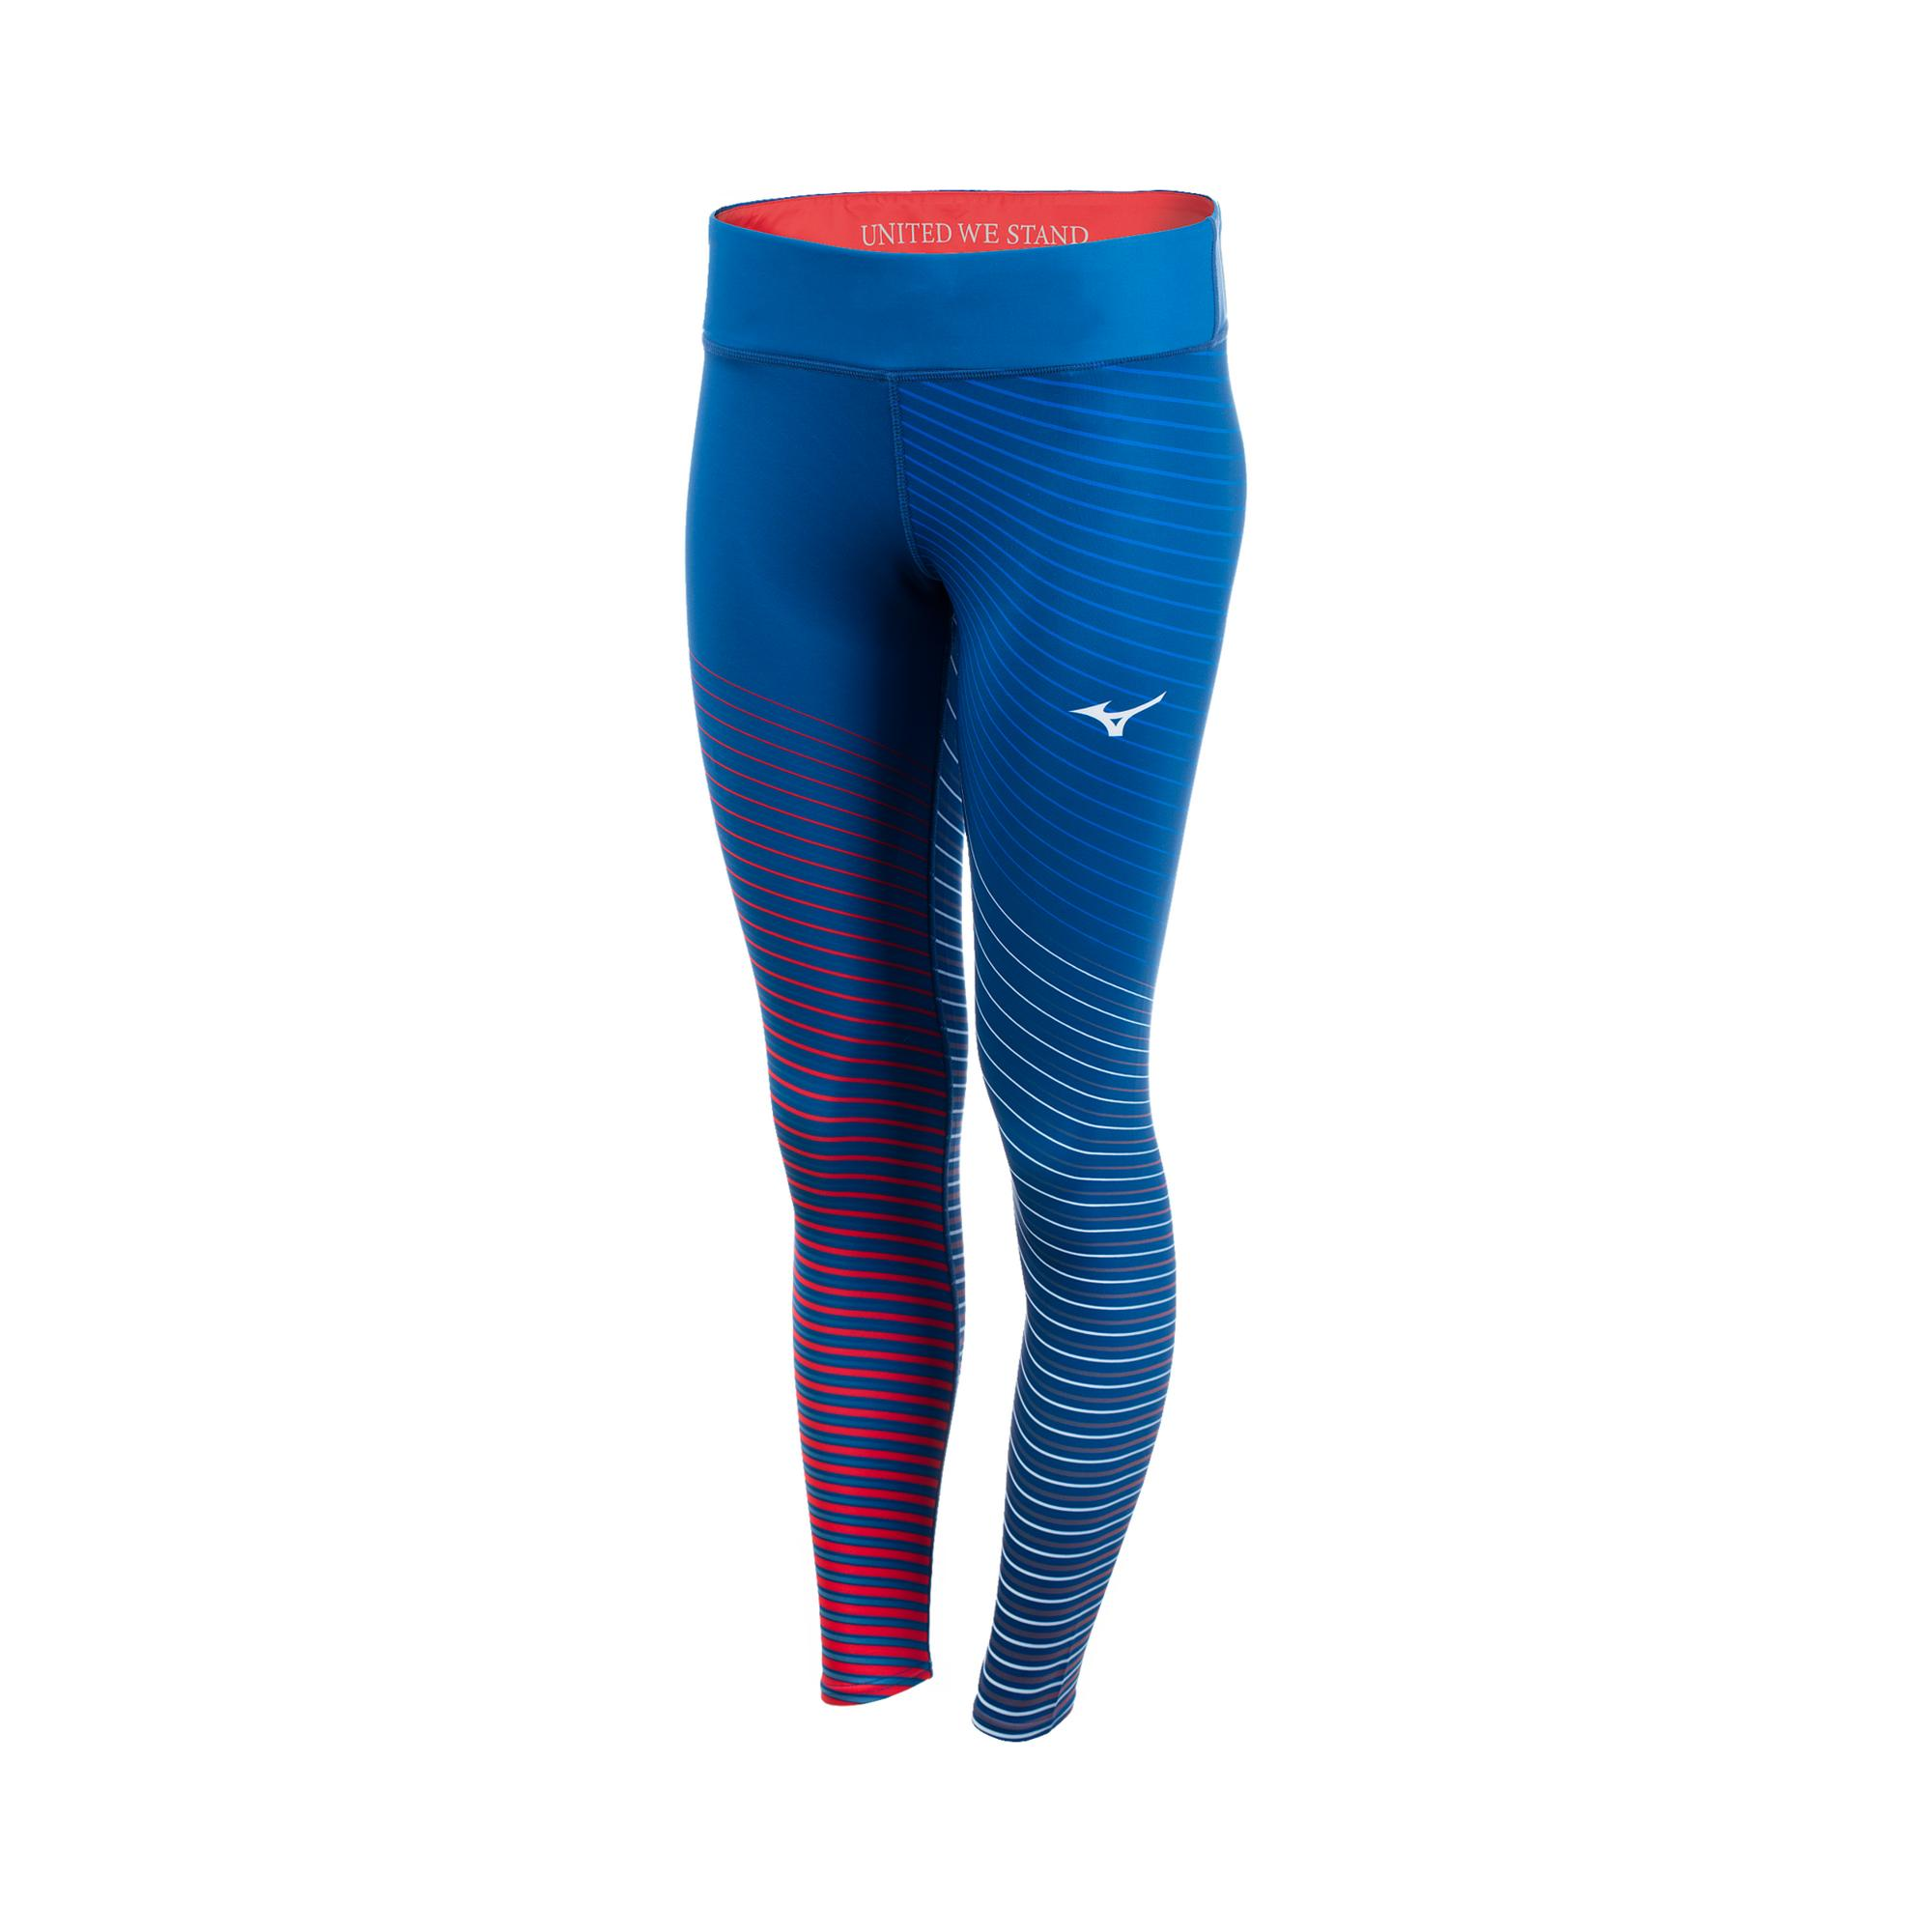 Blue tights with light blue and red stripes on lower legs